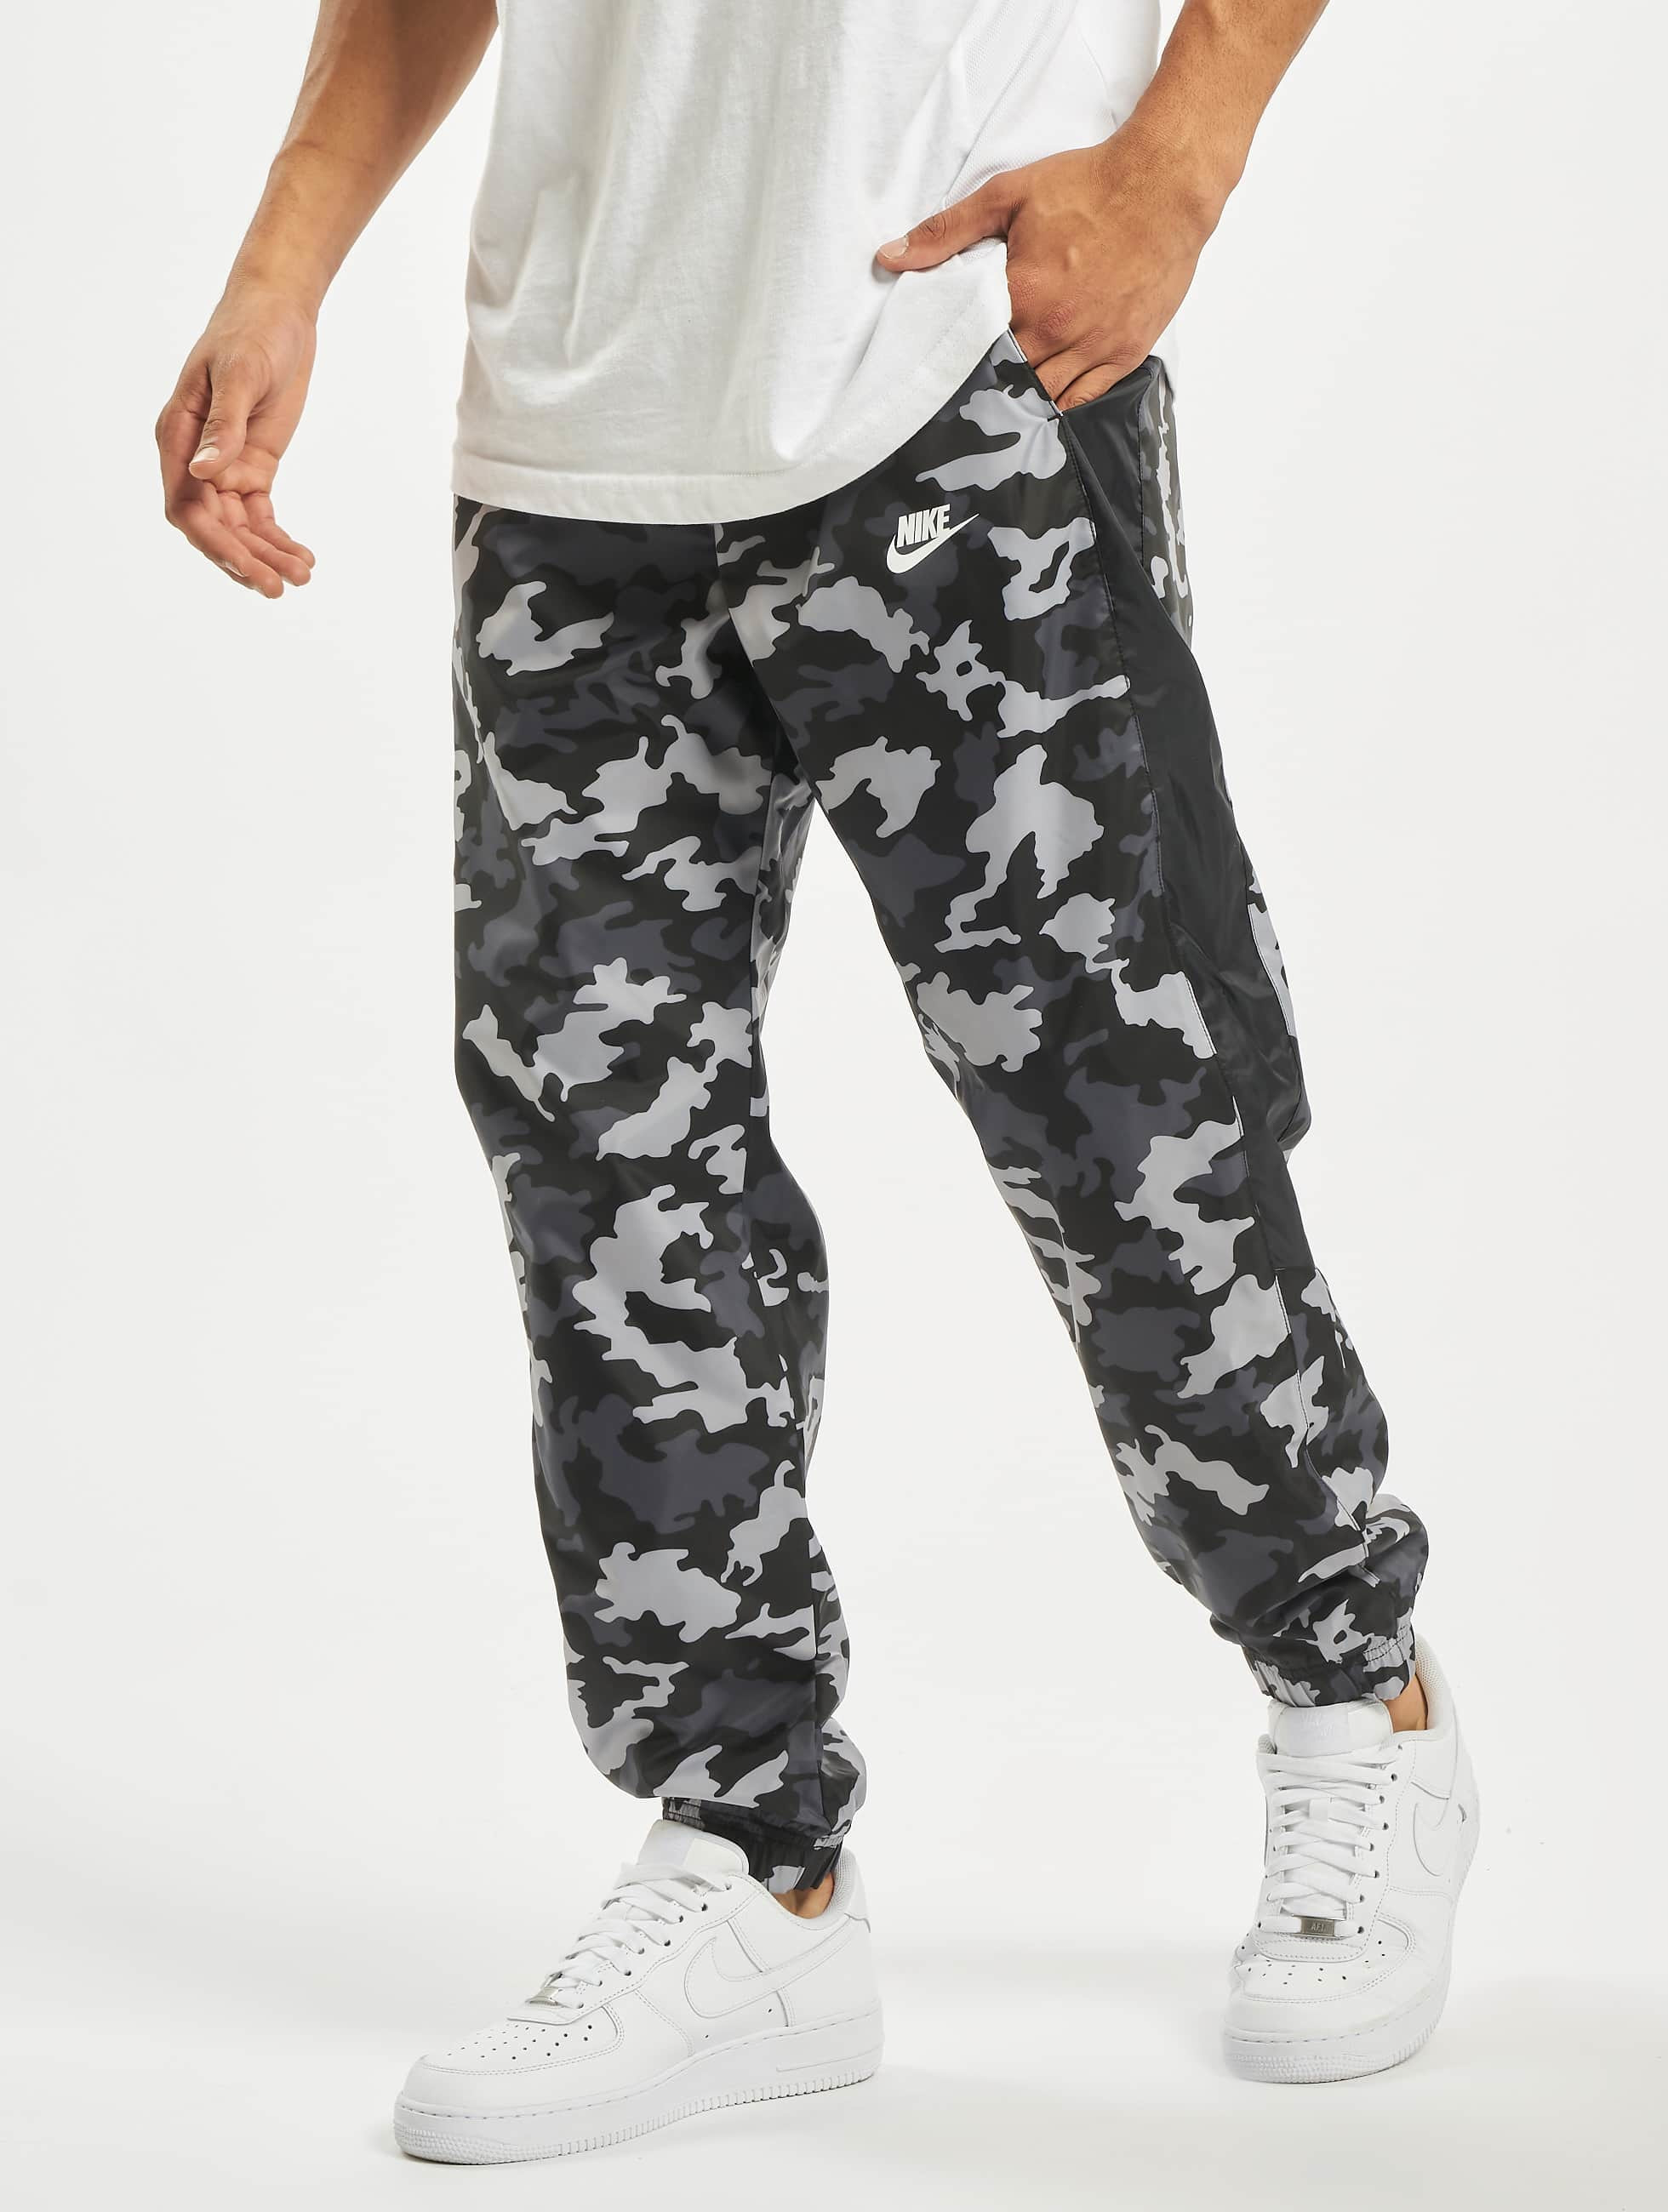 wholesale differently incredible prices Nike CE CF Woven Camo Sweat Pants Black/Black/Summit White